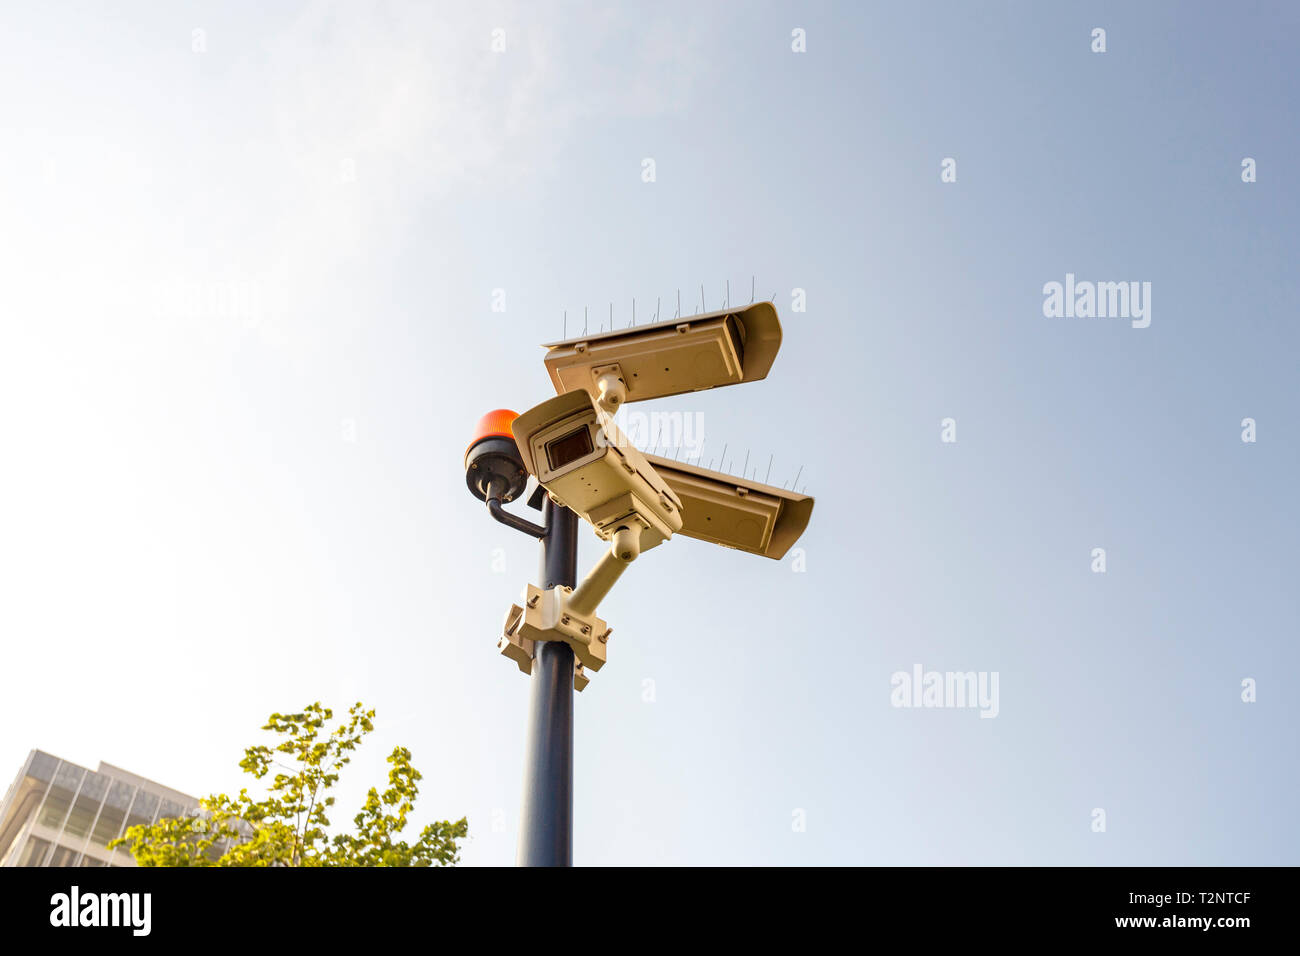 Surveillance camera against clear sunny sky - Stock Image